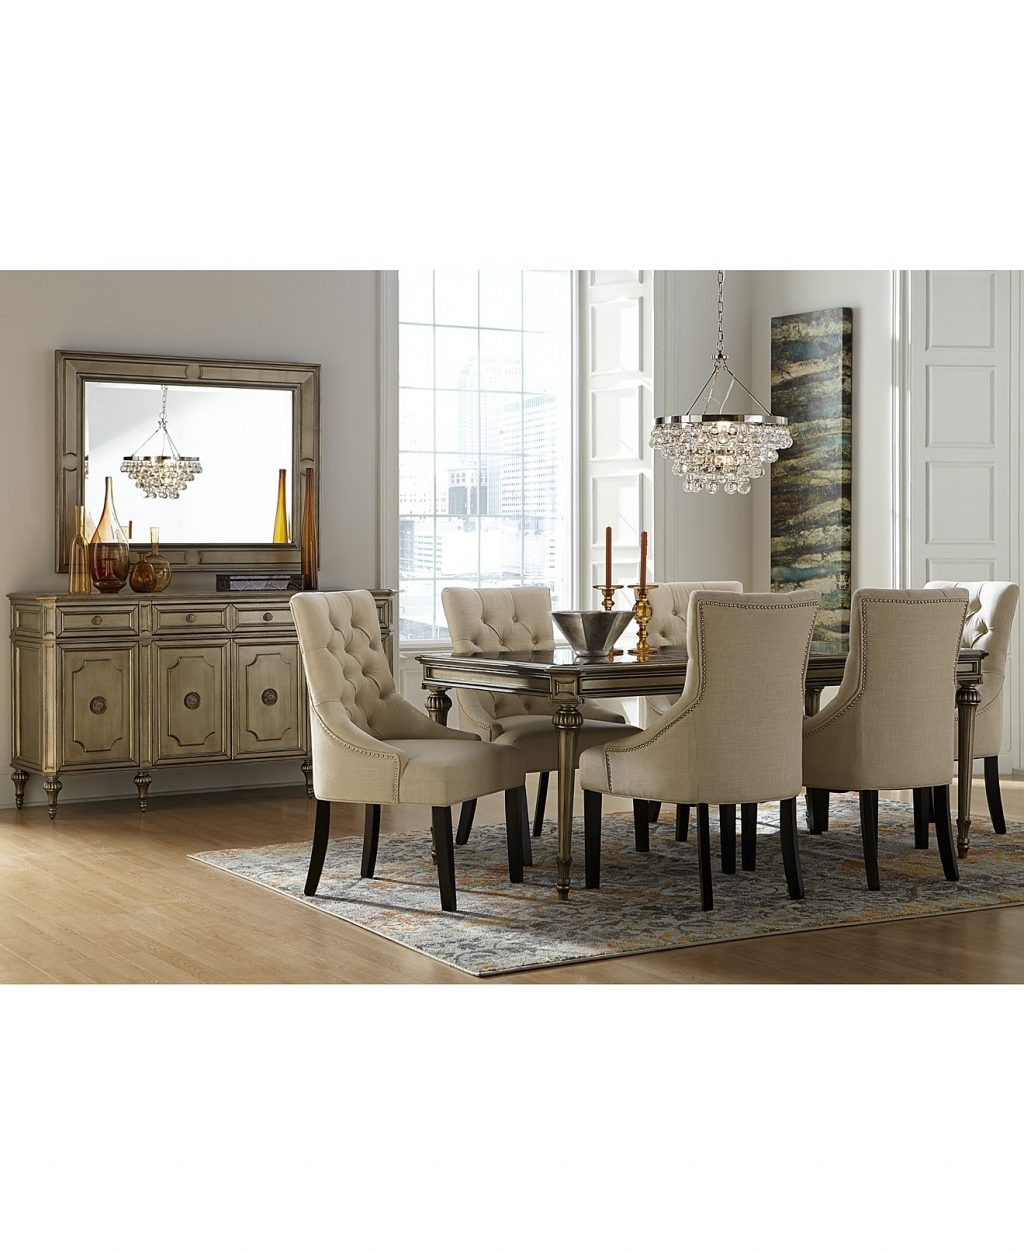 Dining Room Macys Dining Table Macys Dining Table Round Dining